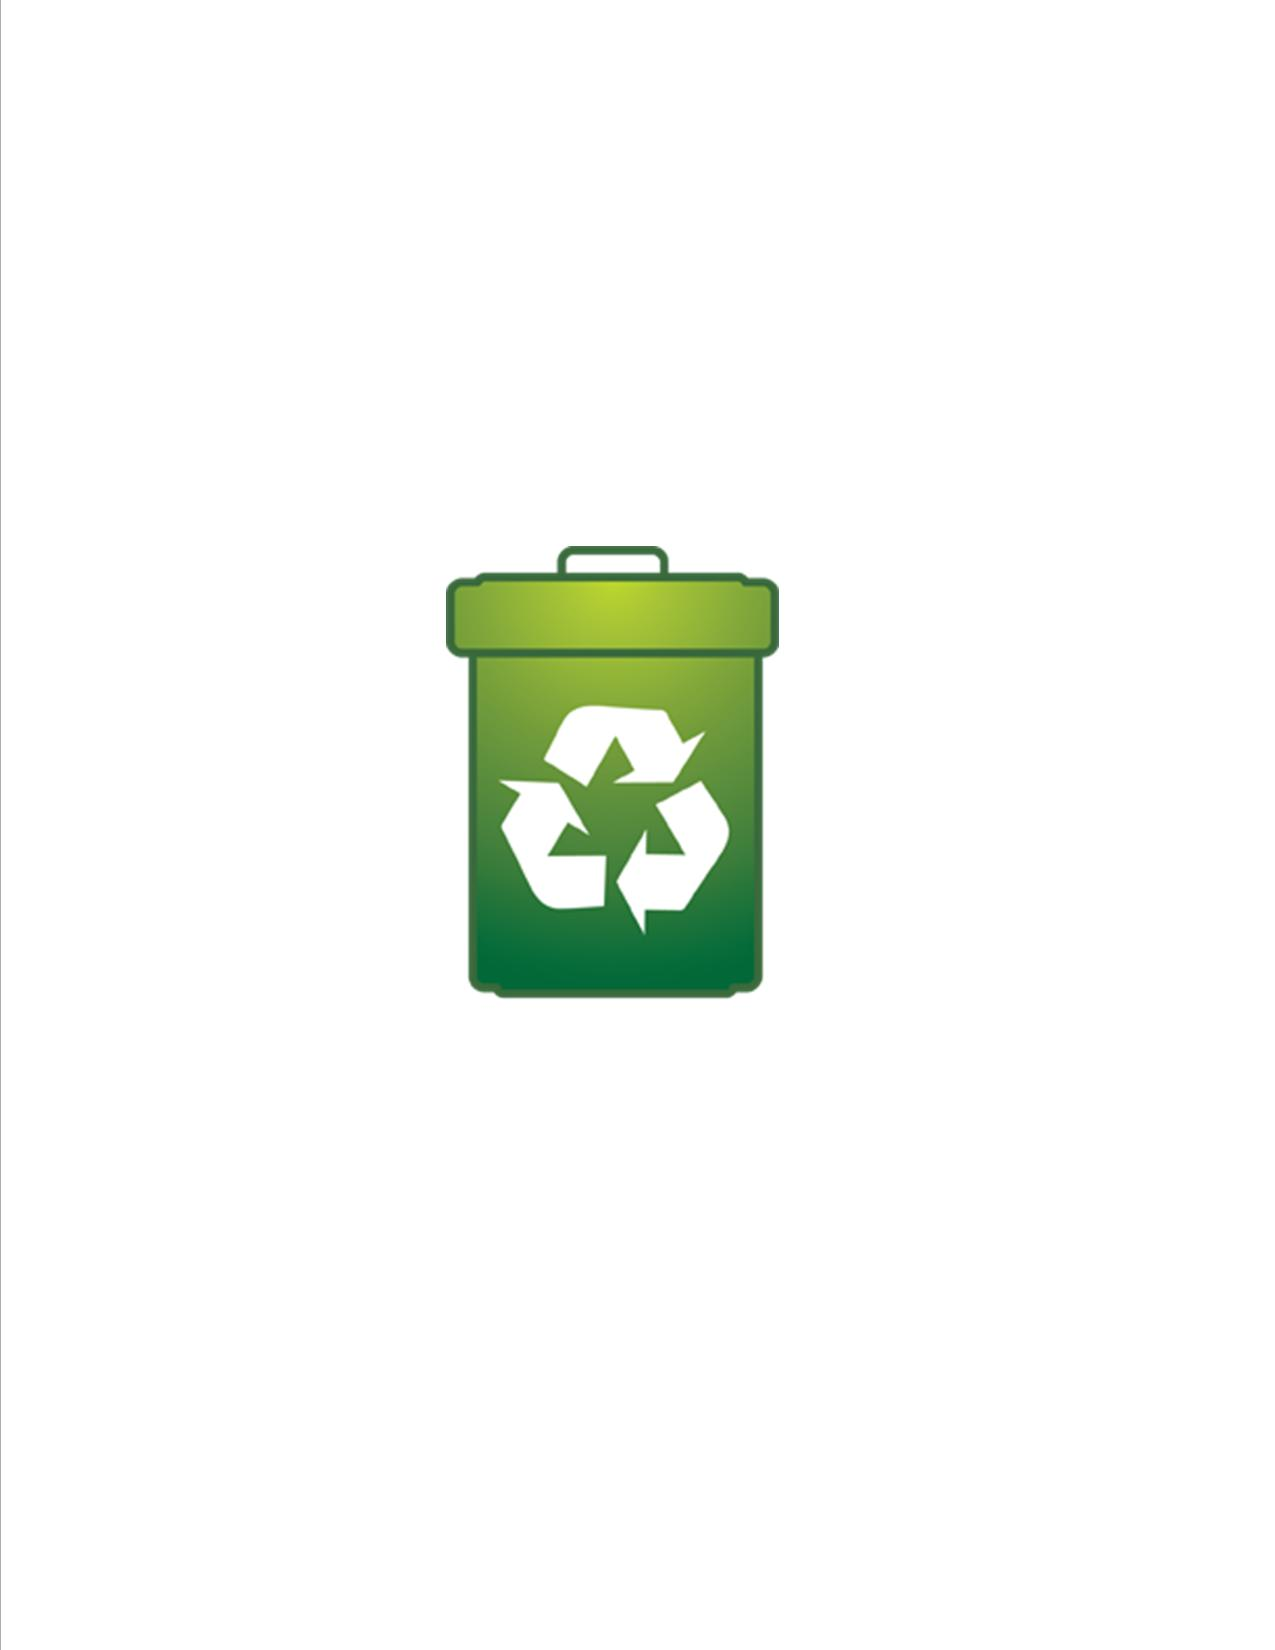 Free Recycling Bin Cliparts, Download Free Clip Art, Free.